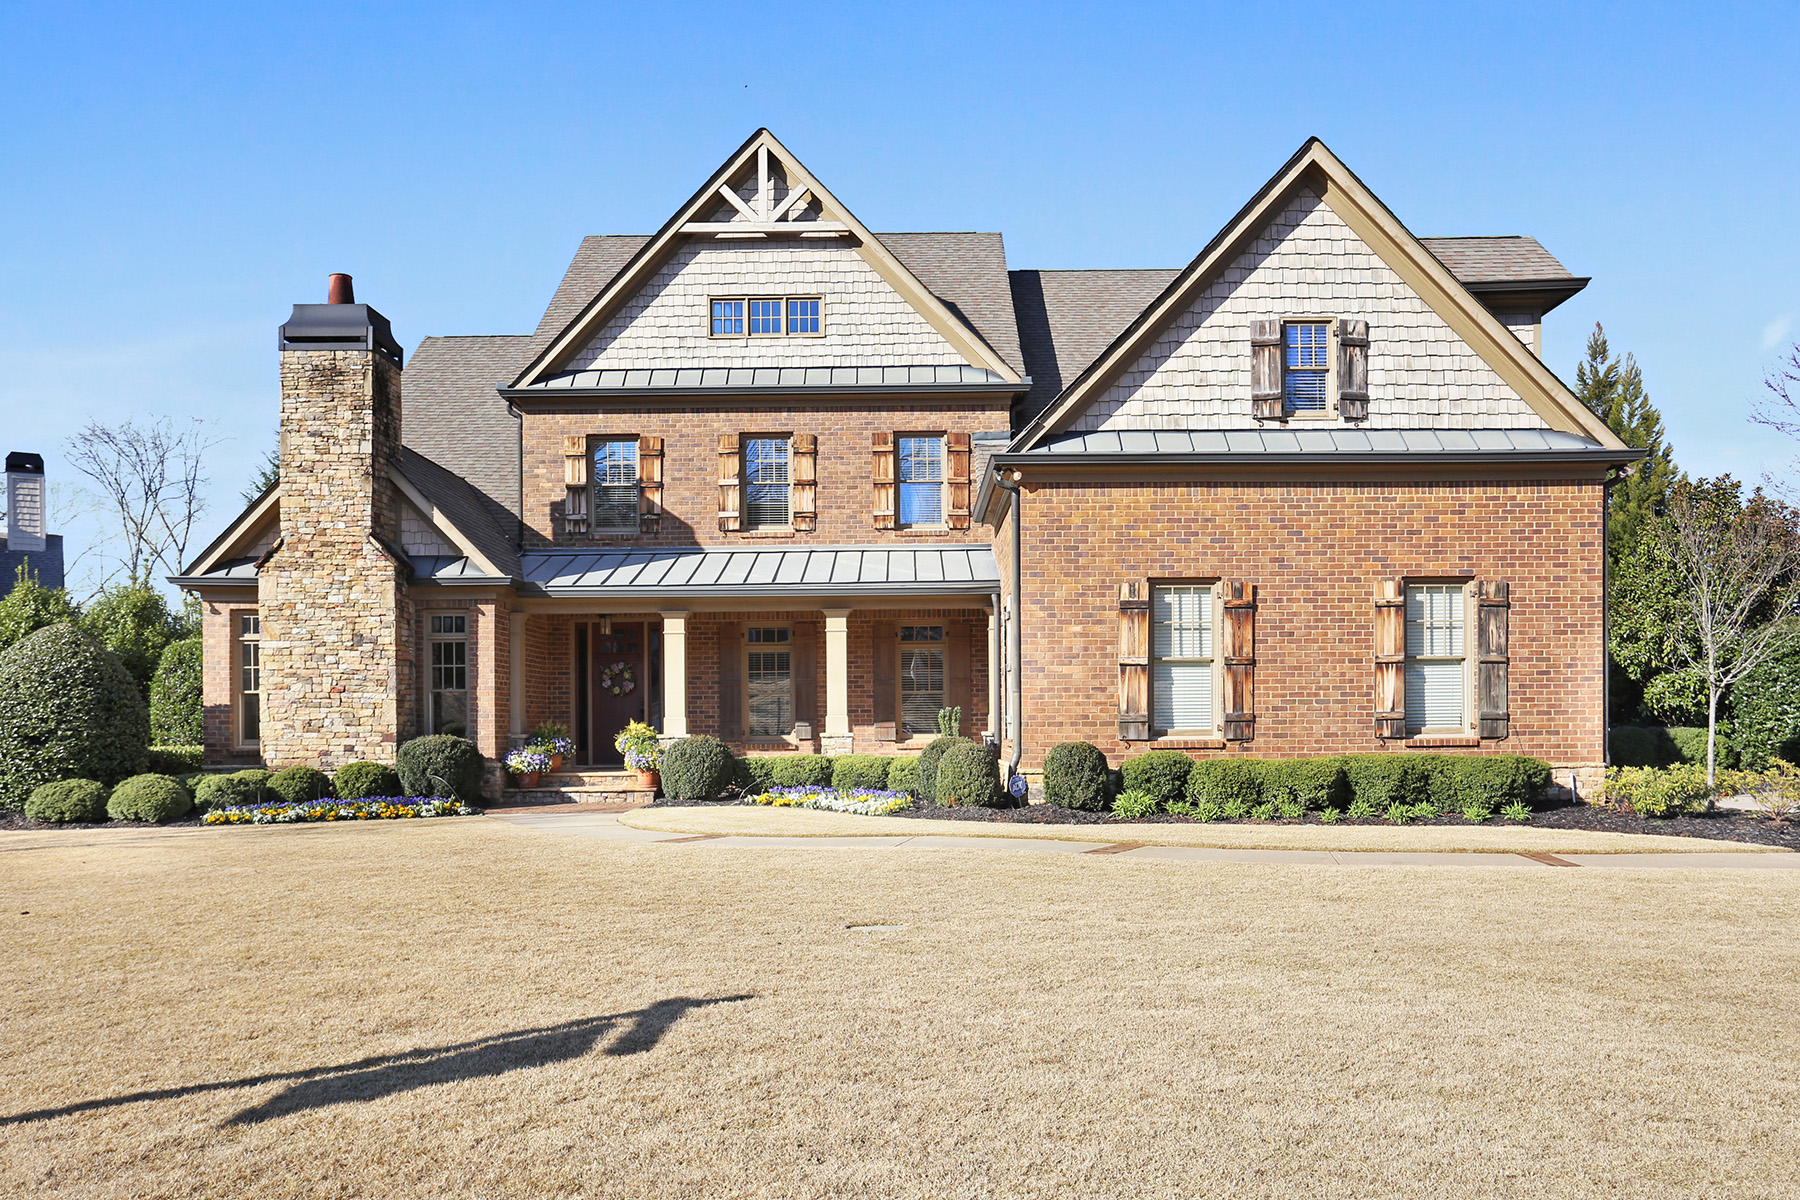 Single Family Homes for Active at Gated - Country Club Living in Brookfield Country Club 1060 Balmoral Lane Roswell, Georgia 30075 United States